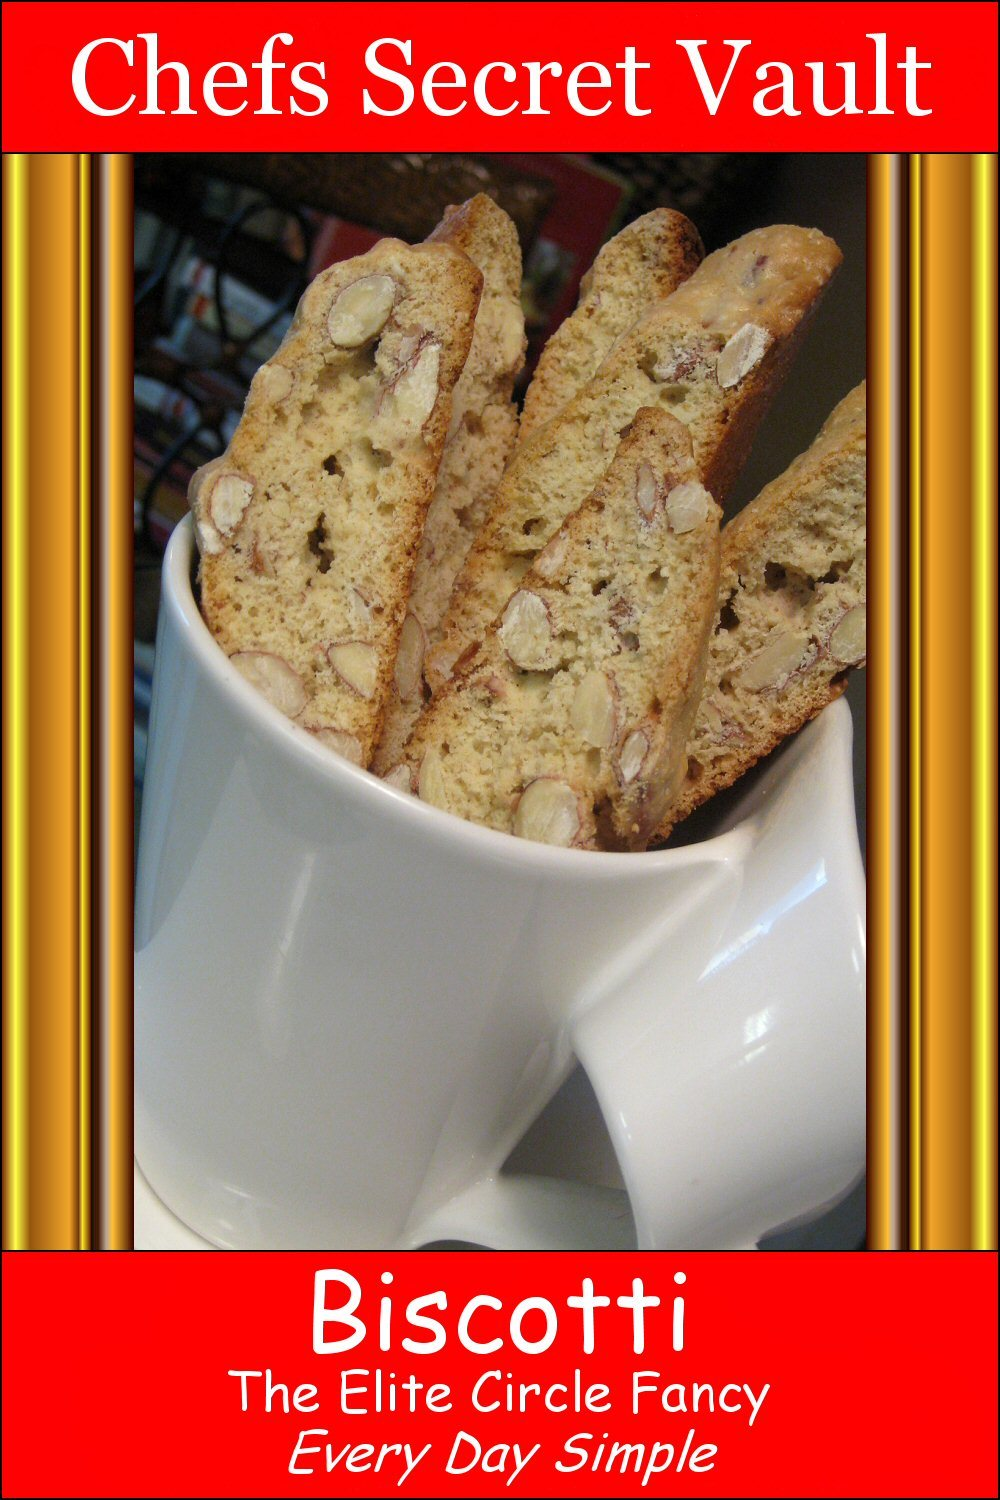 Biscotti: The Elite Circle Fancy - Every Day Simple By: Chefs Secret Vault